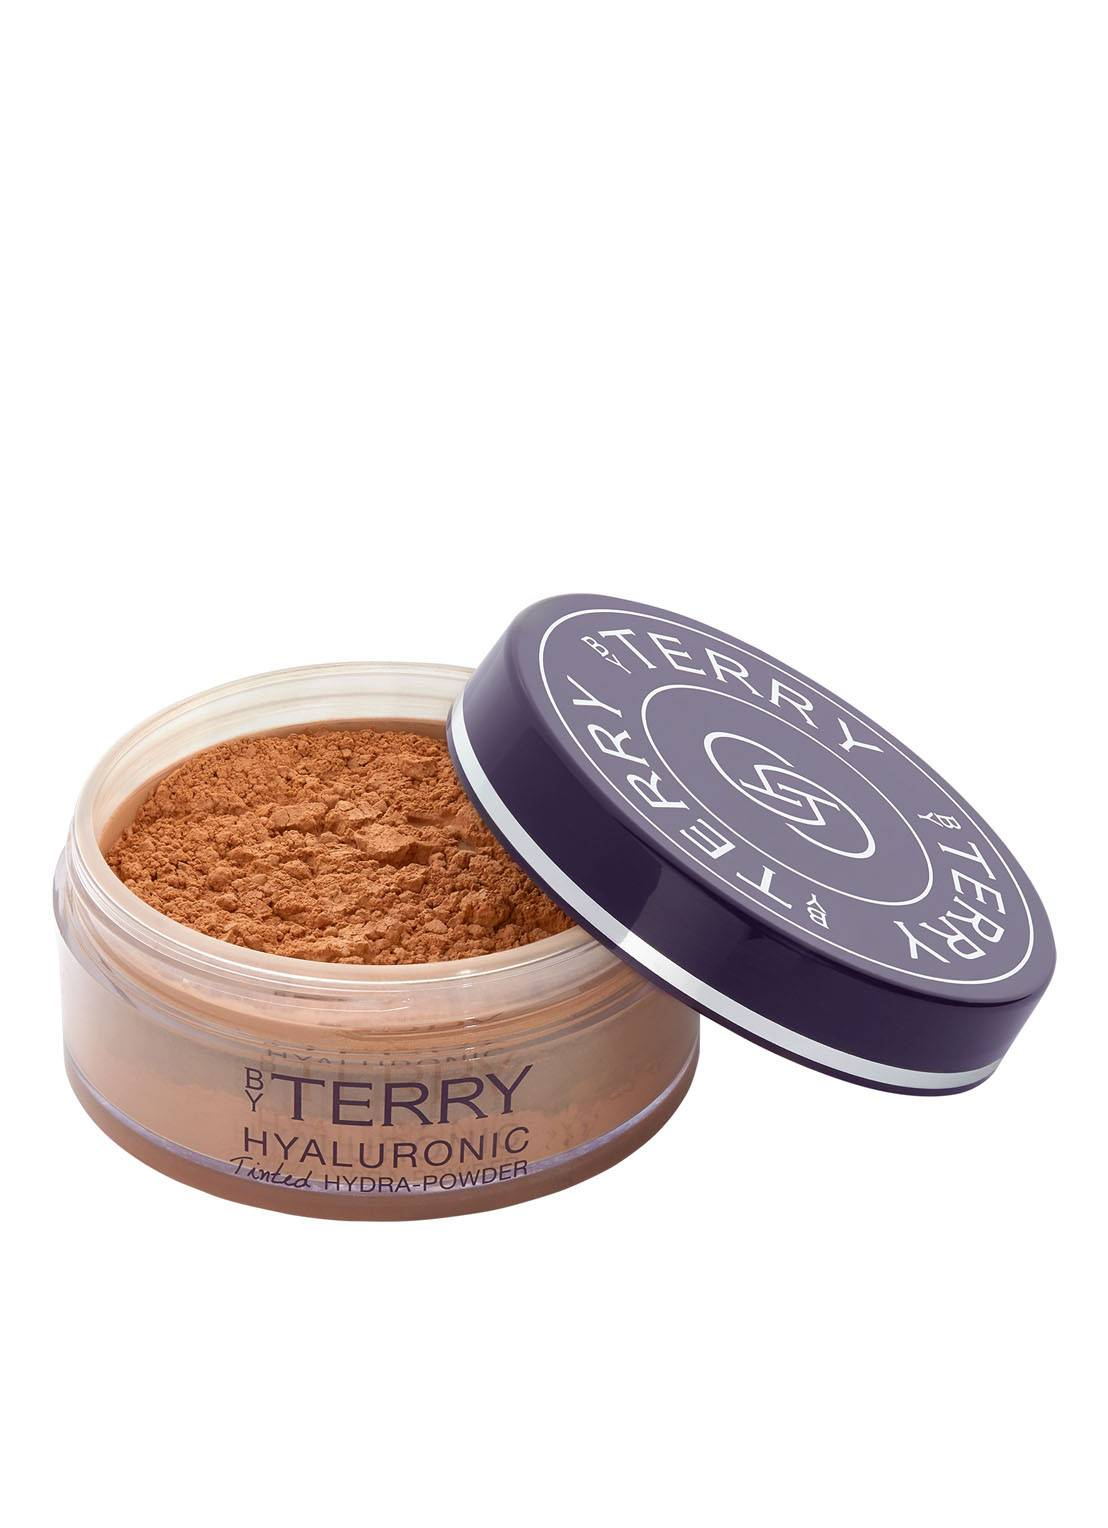 by terry Hyaluronic Tinted Hydra Powder - poudre libre - N500 Medium Dark